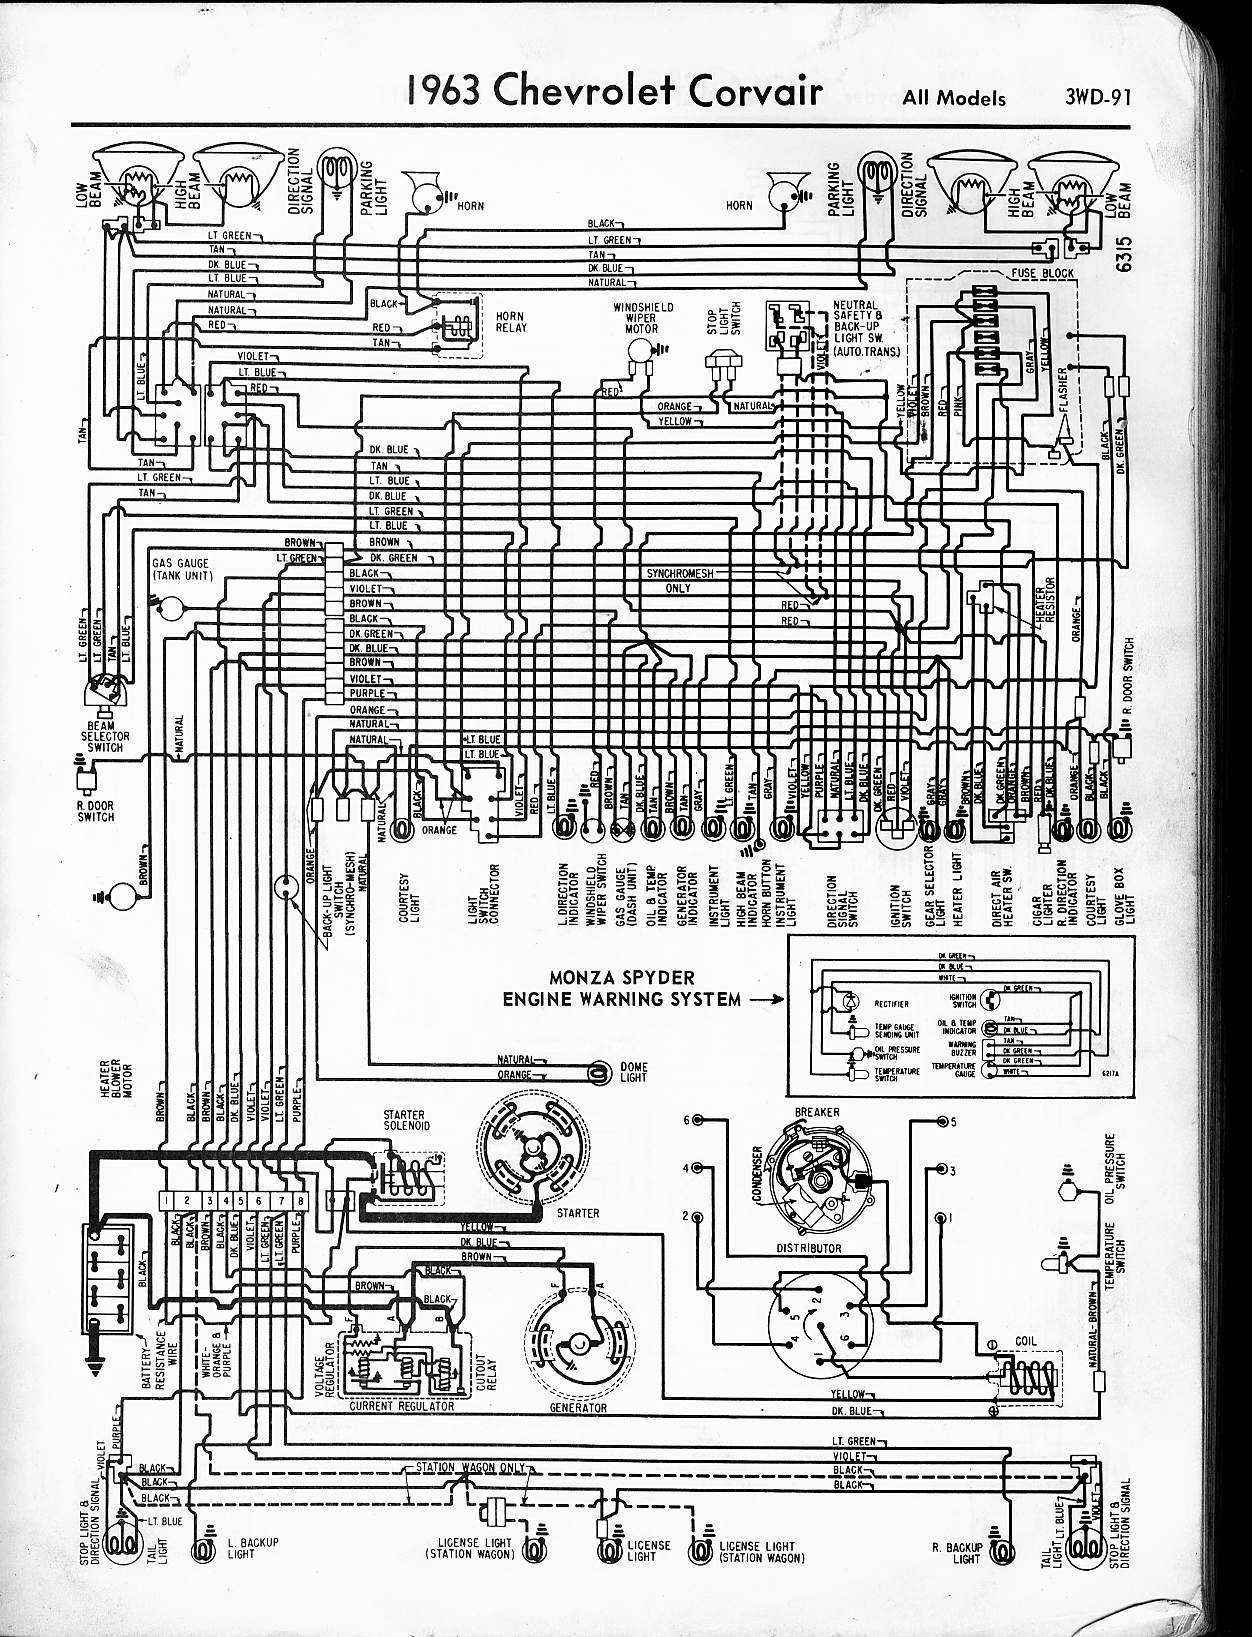 1957 Corvette Starter Wiring Diagram Electricity Basics 101 1968 For 57 65 Chevy Diagrams Rh Oldcarmanualproject Com 1975